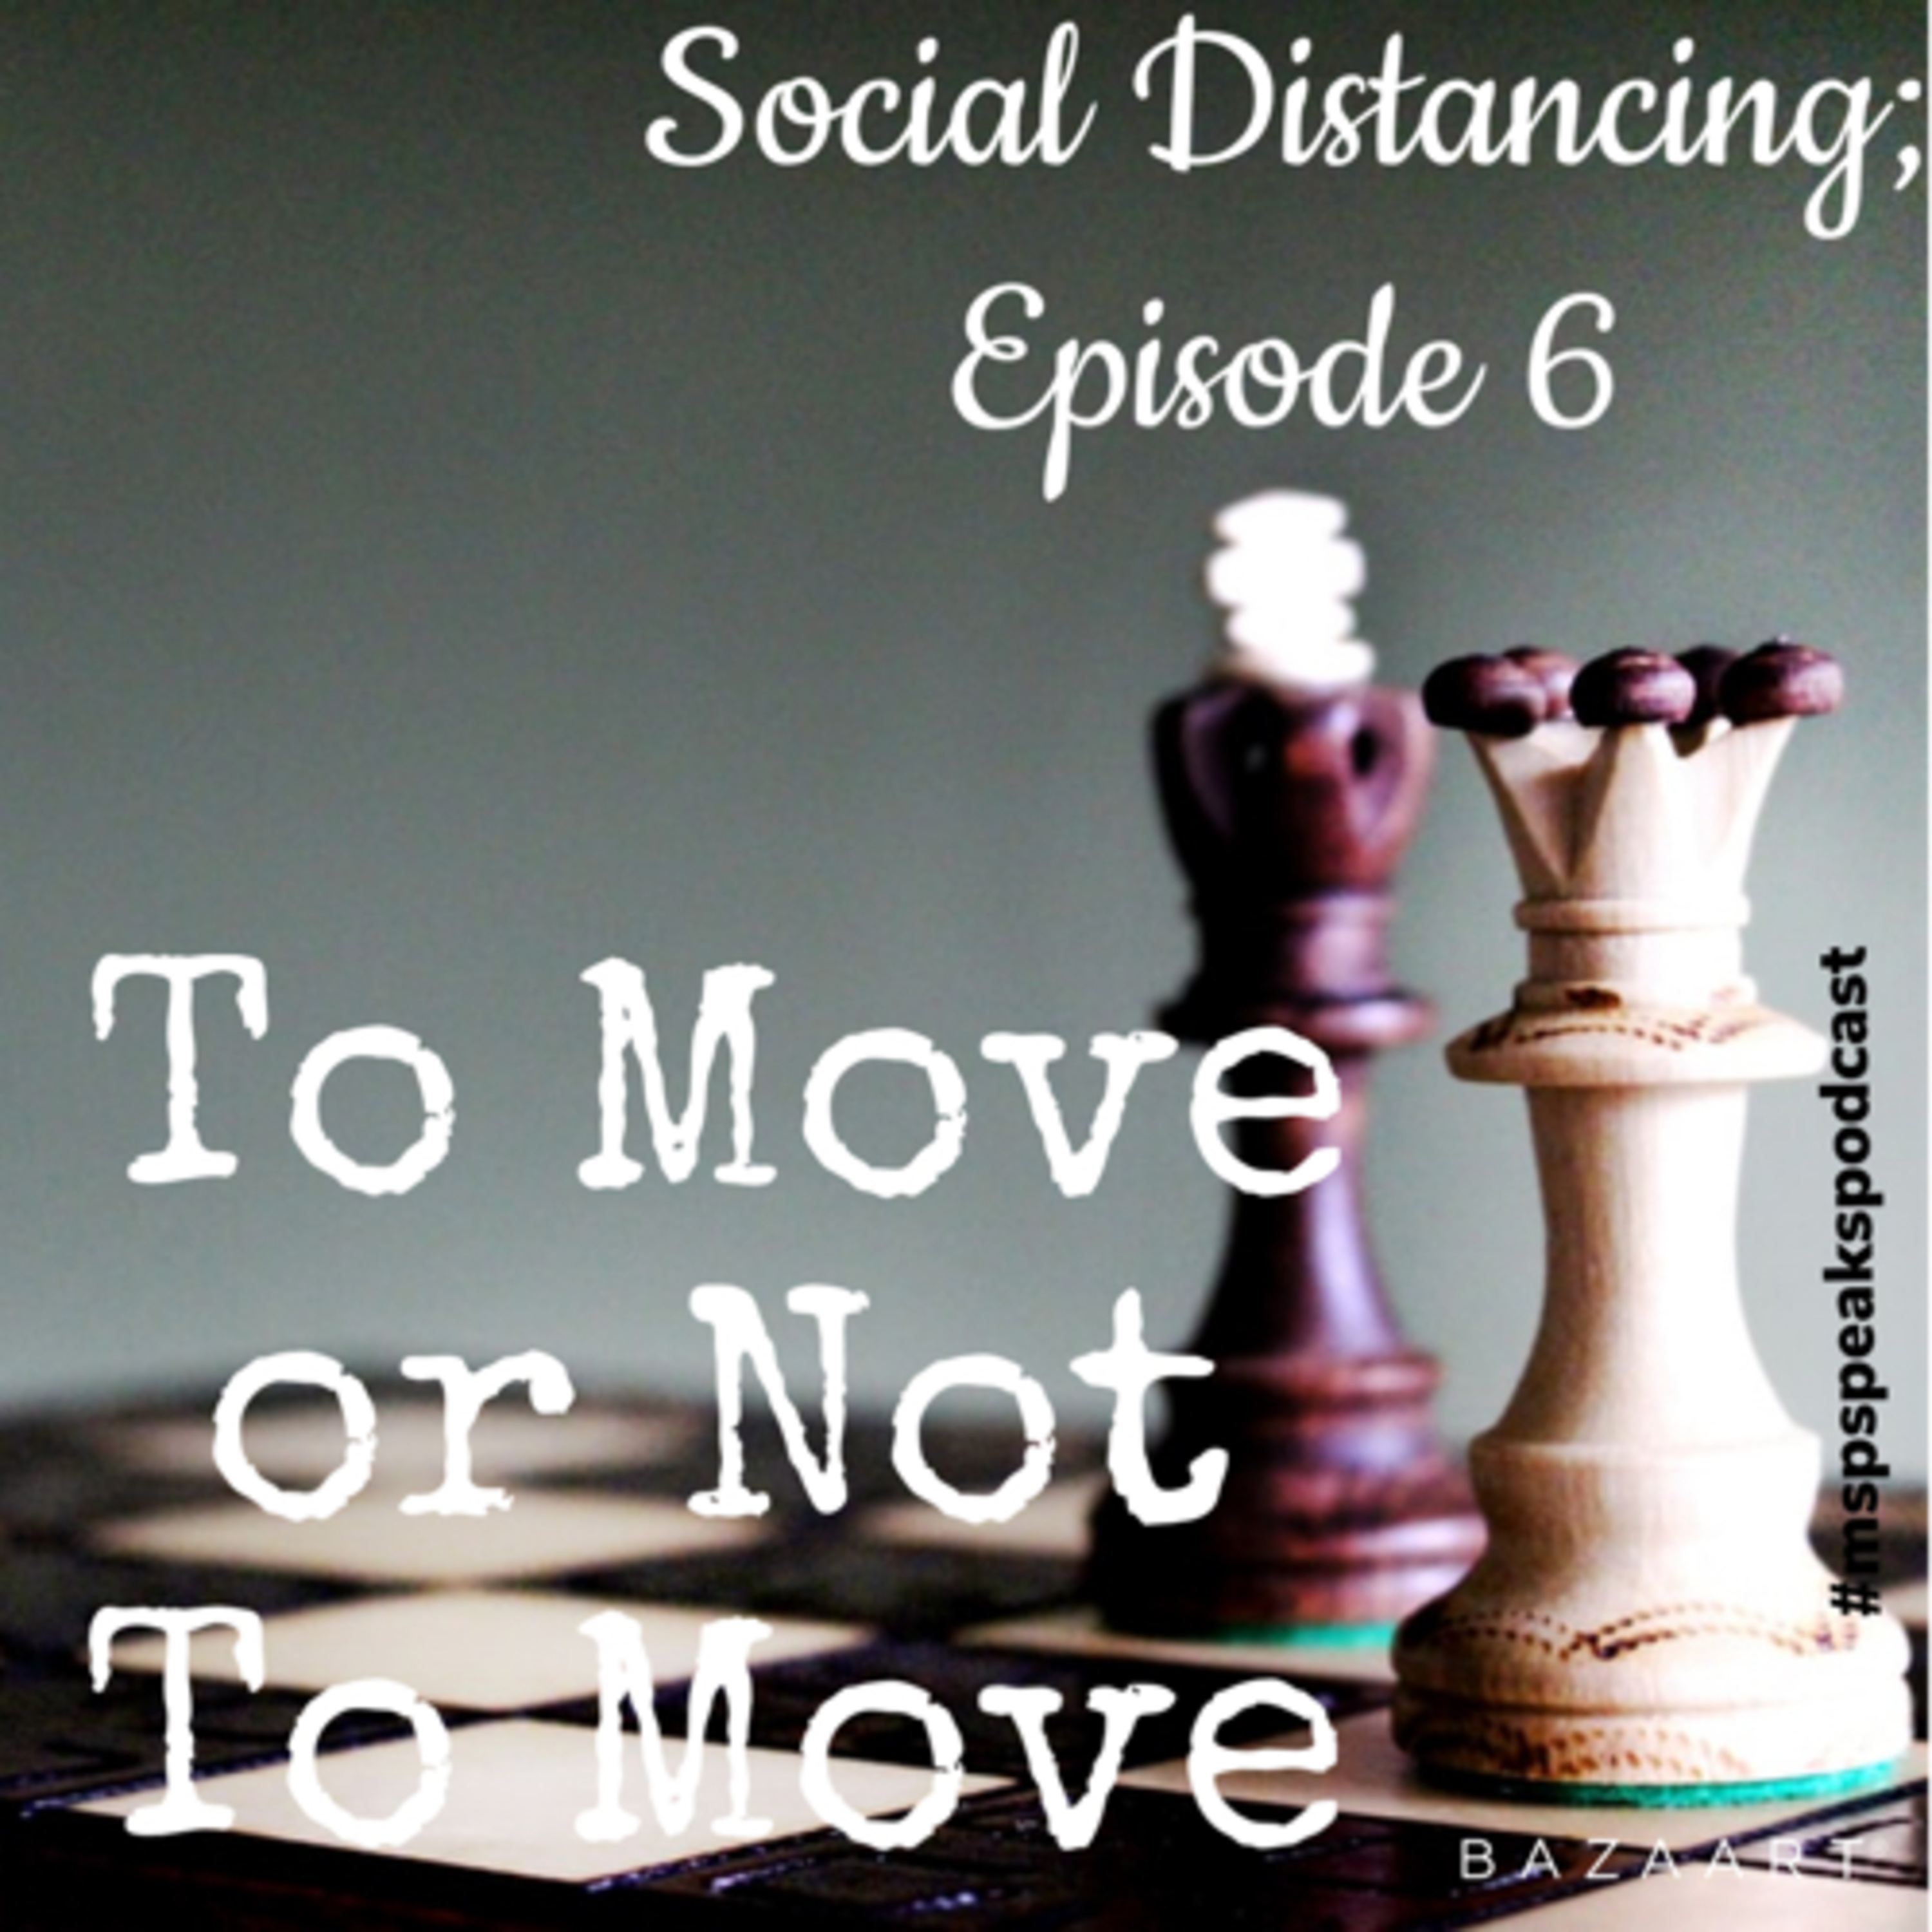 *Social Distancing - Episode 6; To Move or Not To Move